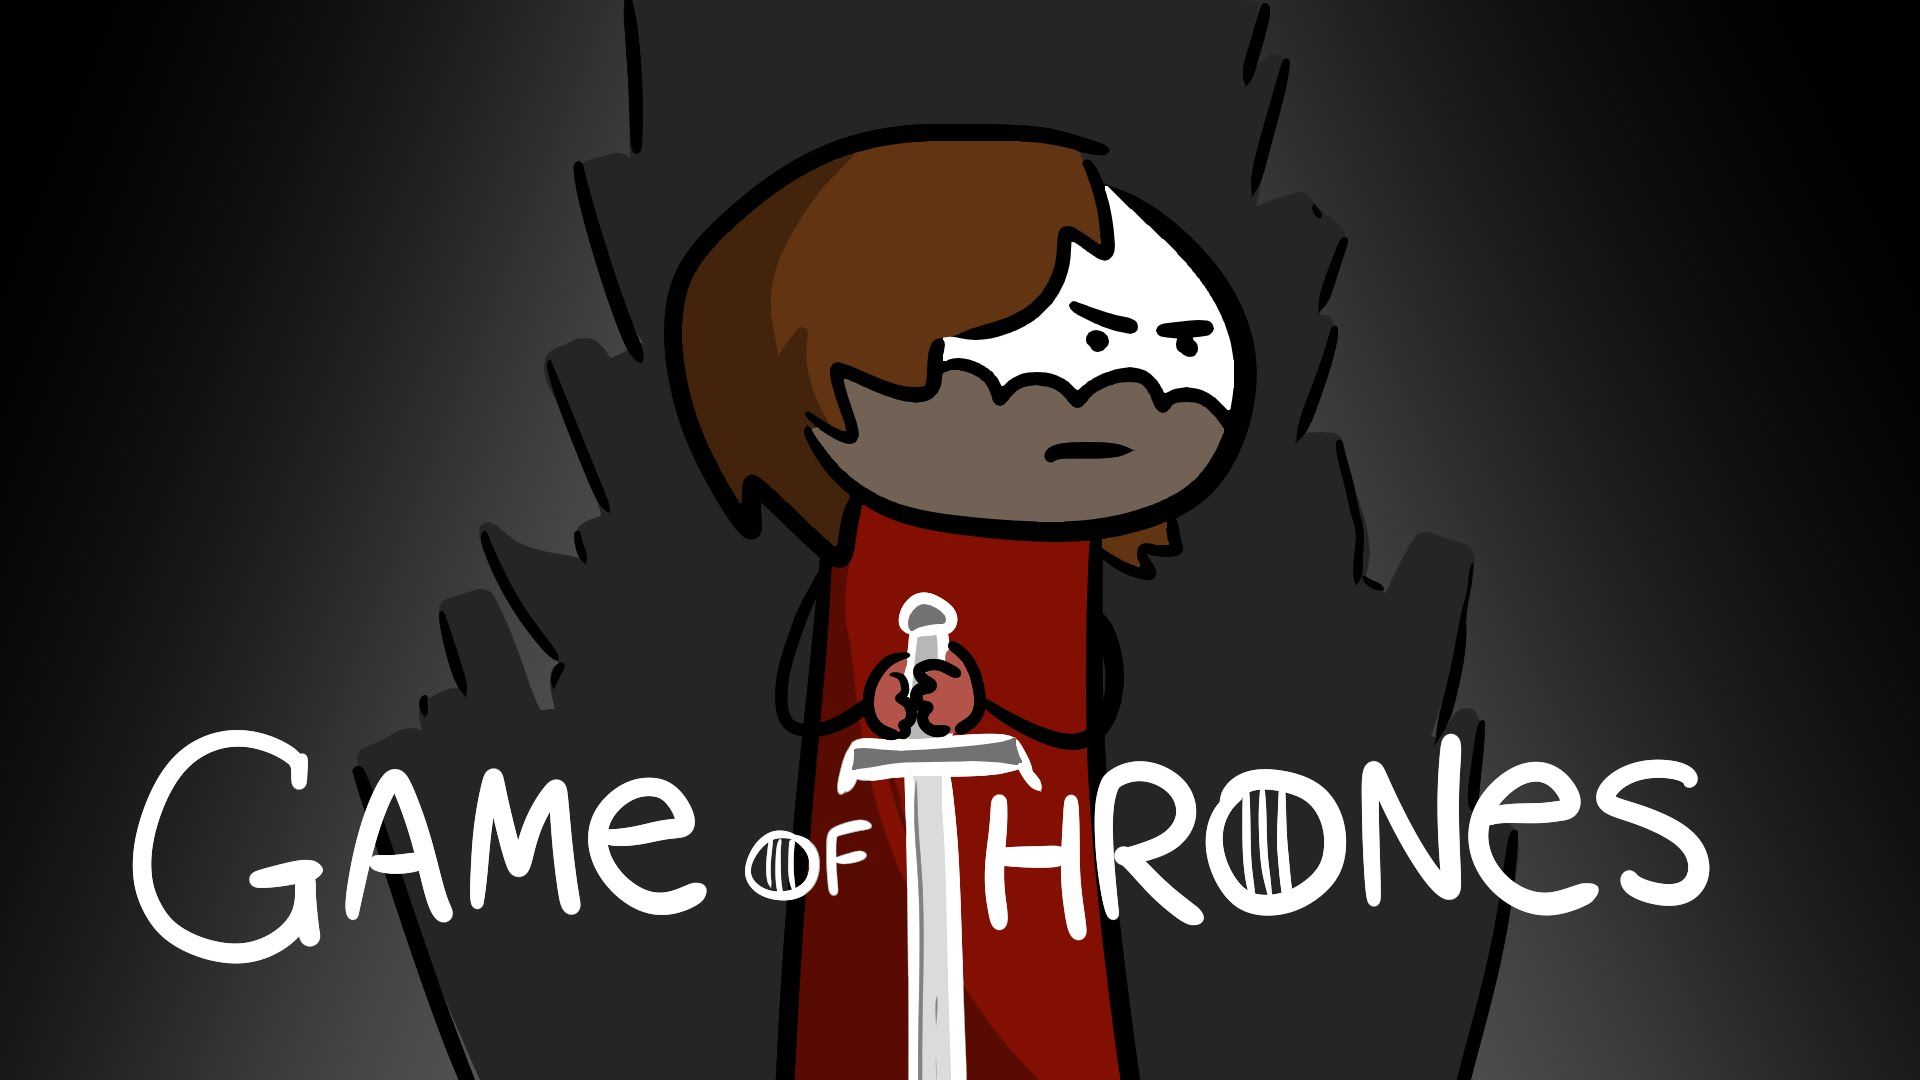 Sio game of thrones